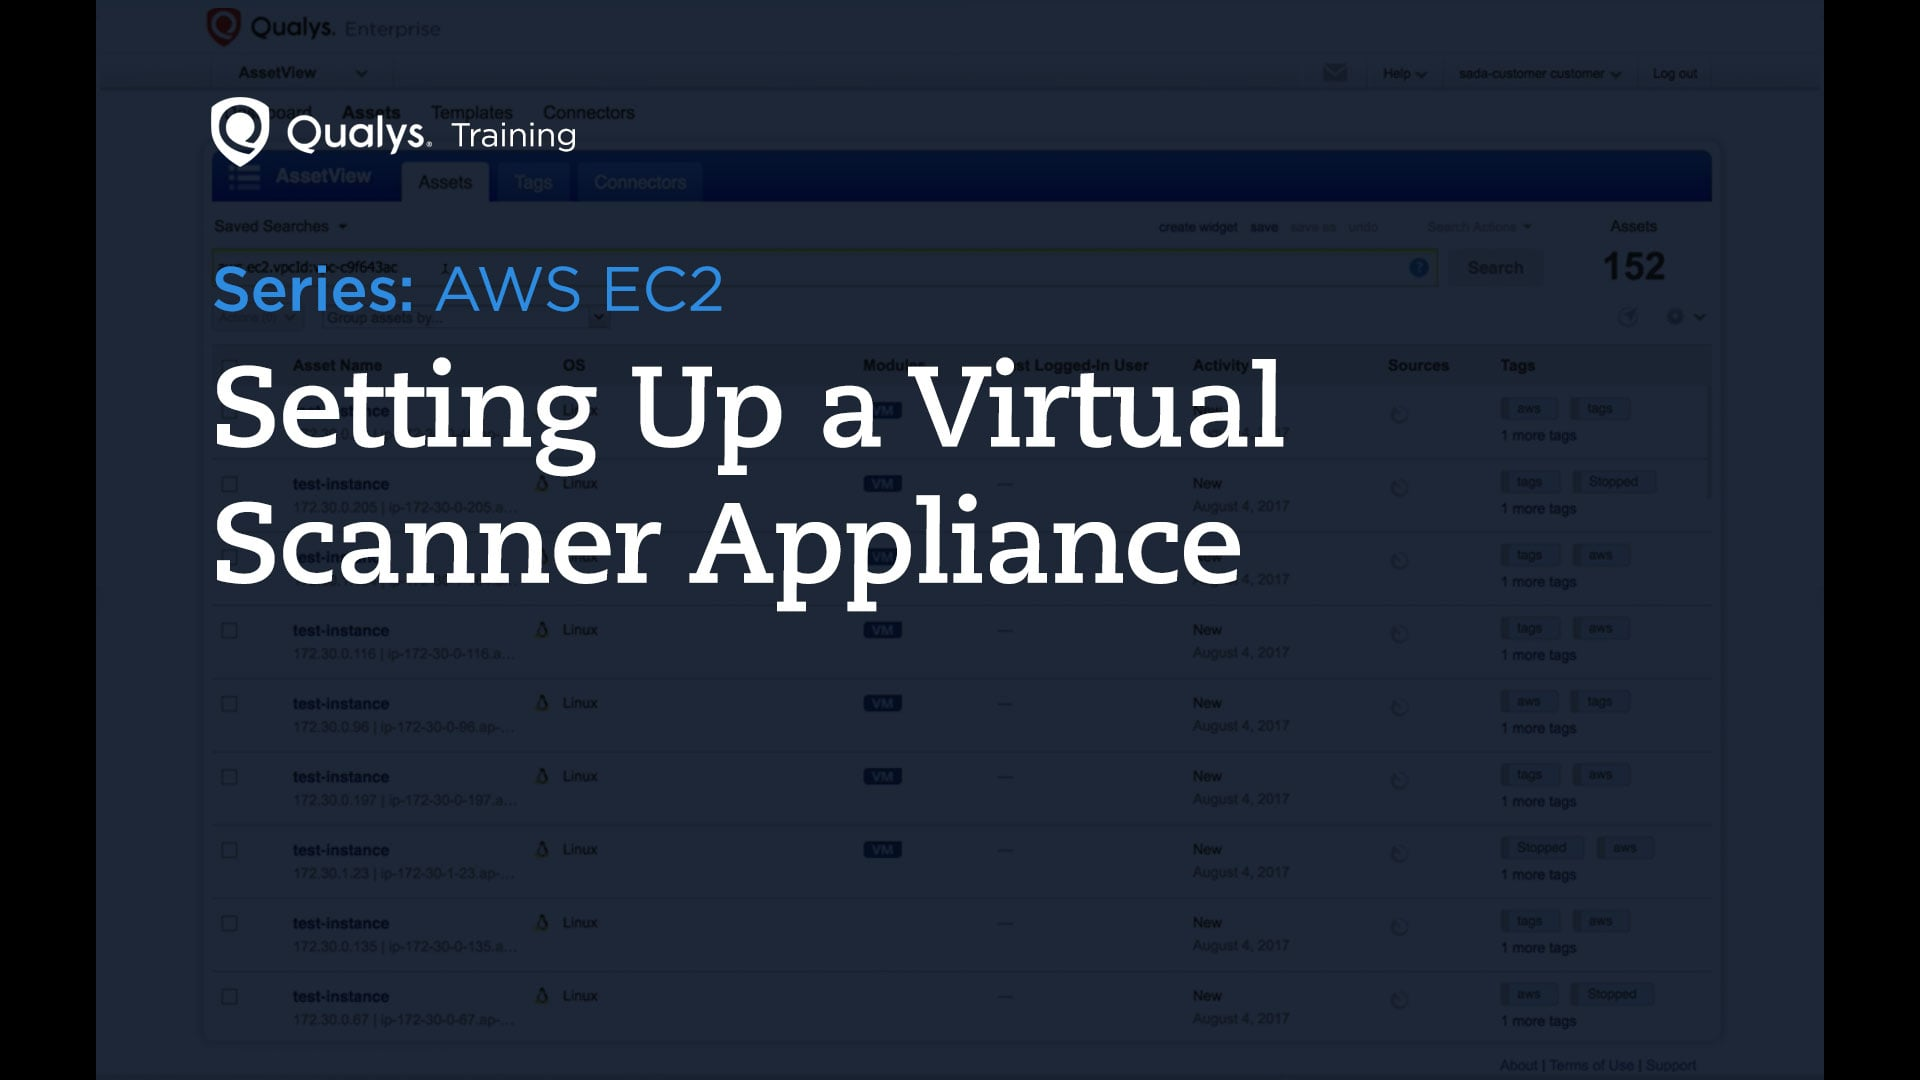 Setting Up a Virtual Scanner Appliance